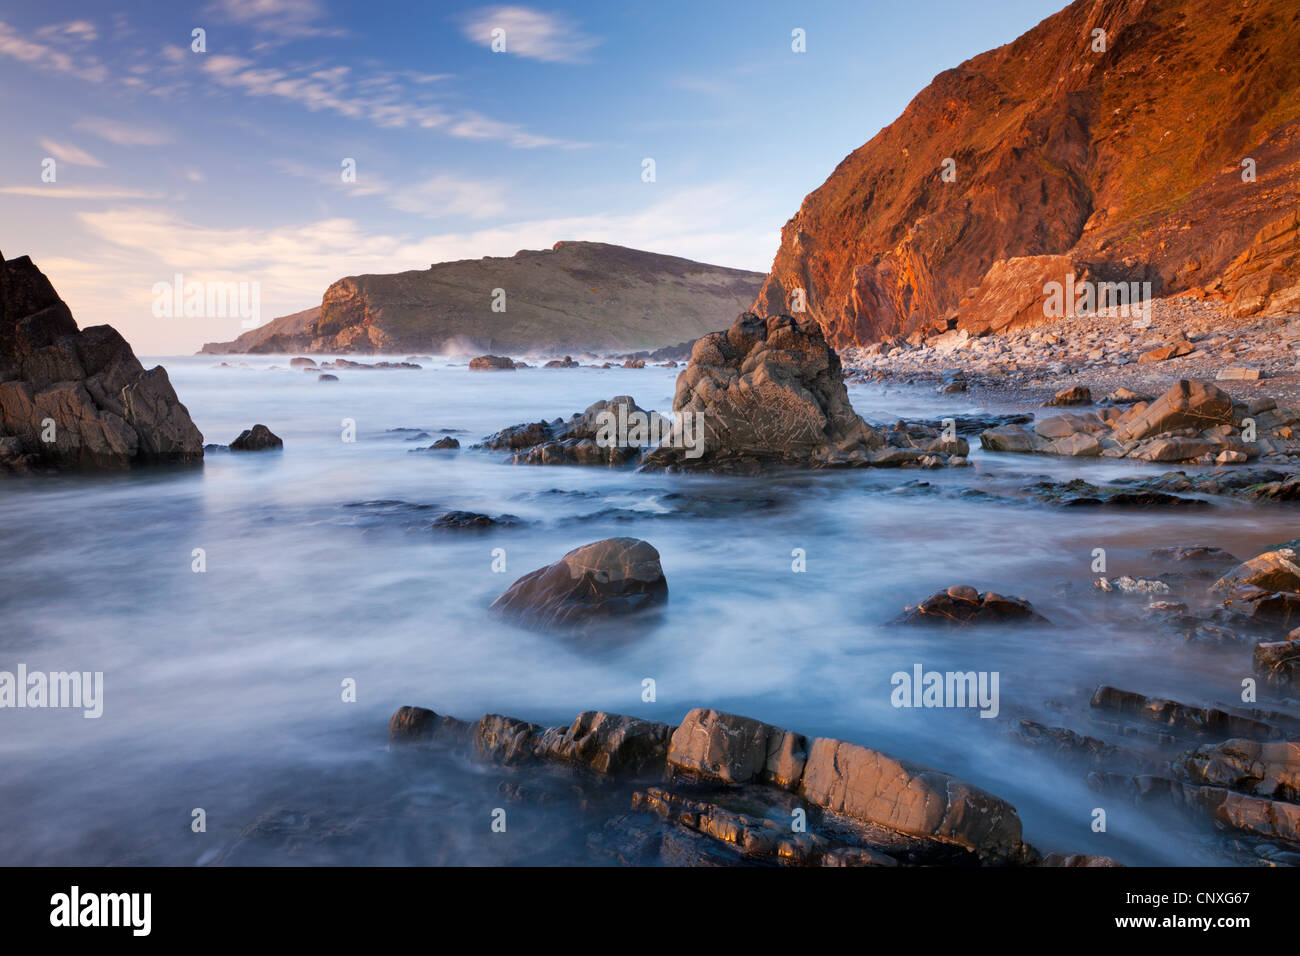 High tide floods the rocky ledges of Duckpool beach on the North Cornish coast, Cornwall, England. Spring (March) - Stock Image